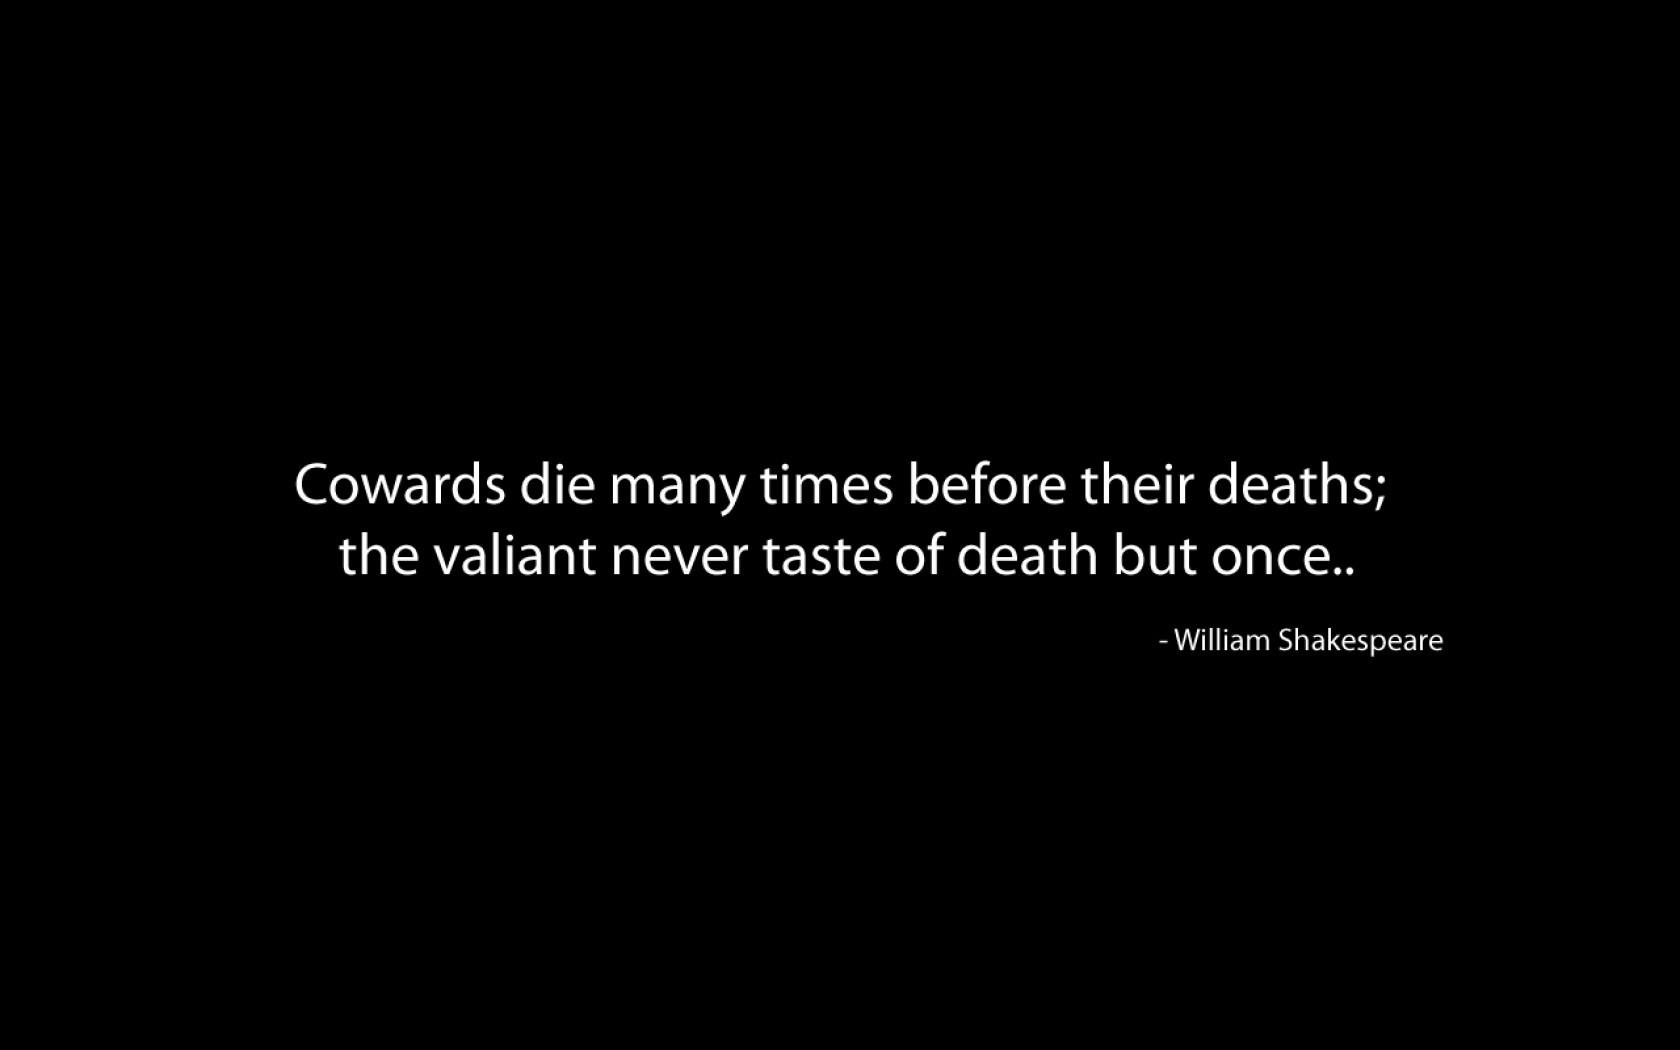 Shakespeare Quotes About Life Fascinating 35 Famous William Shakespeare Quotes About Love And Life